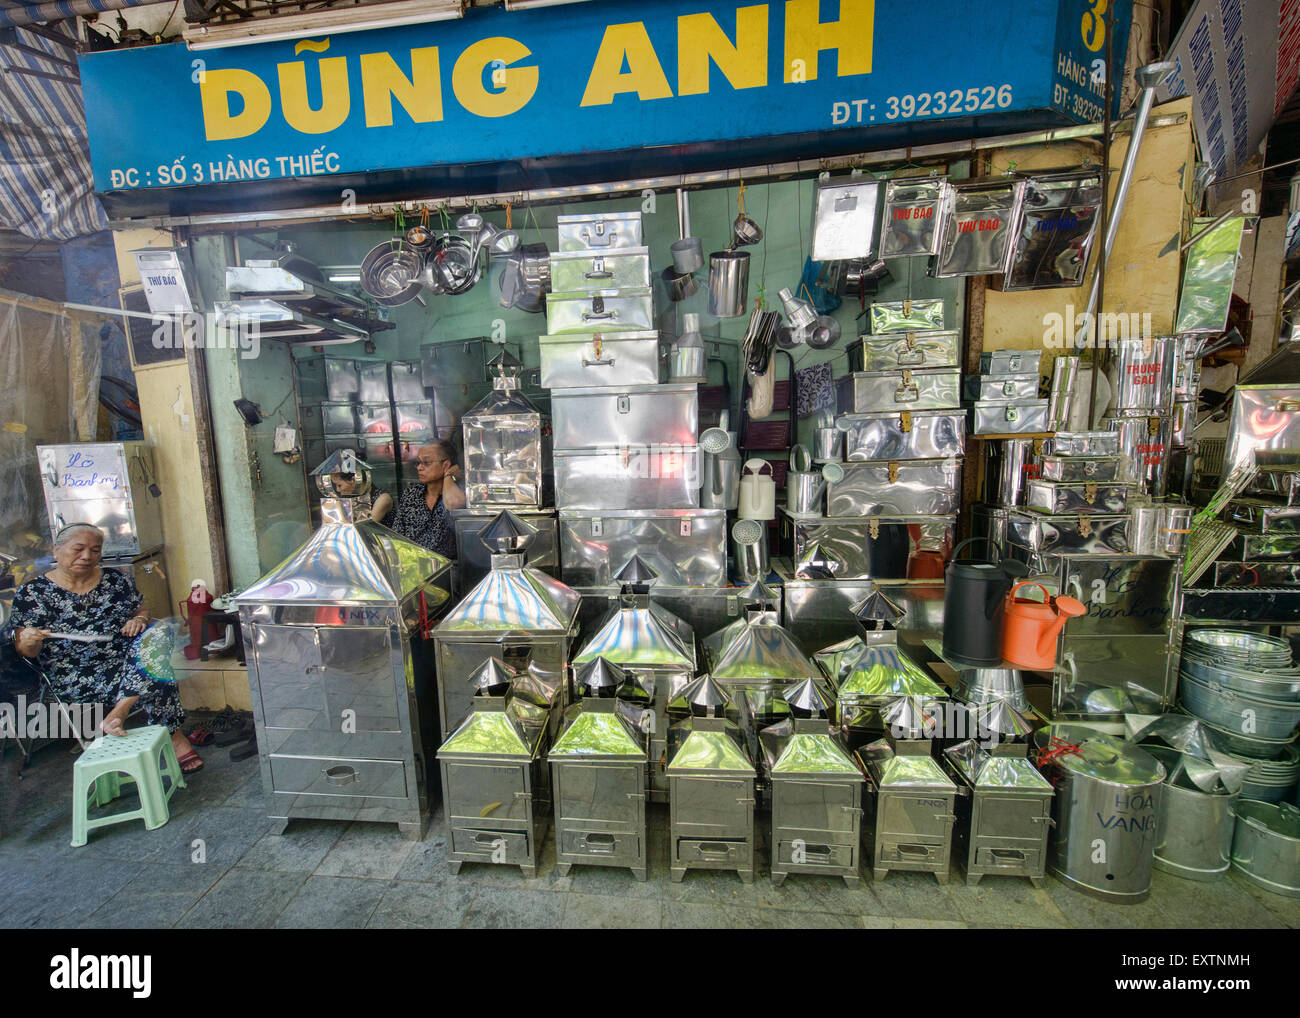 Tin shop in the Old Quarter of Hanoi, Vietnam - Stock Image